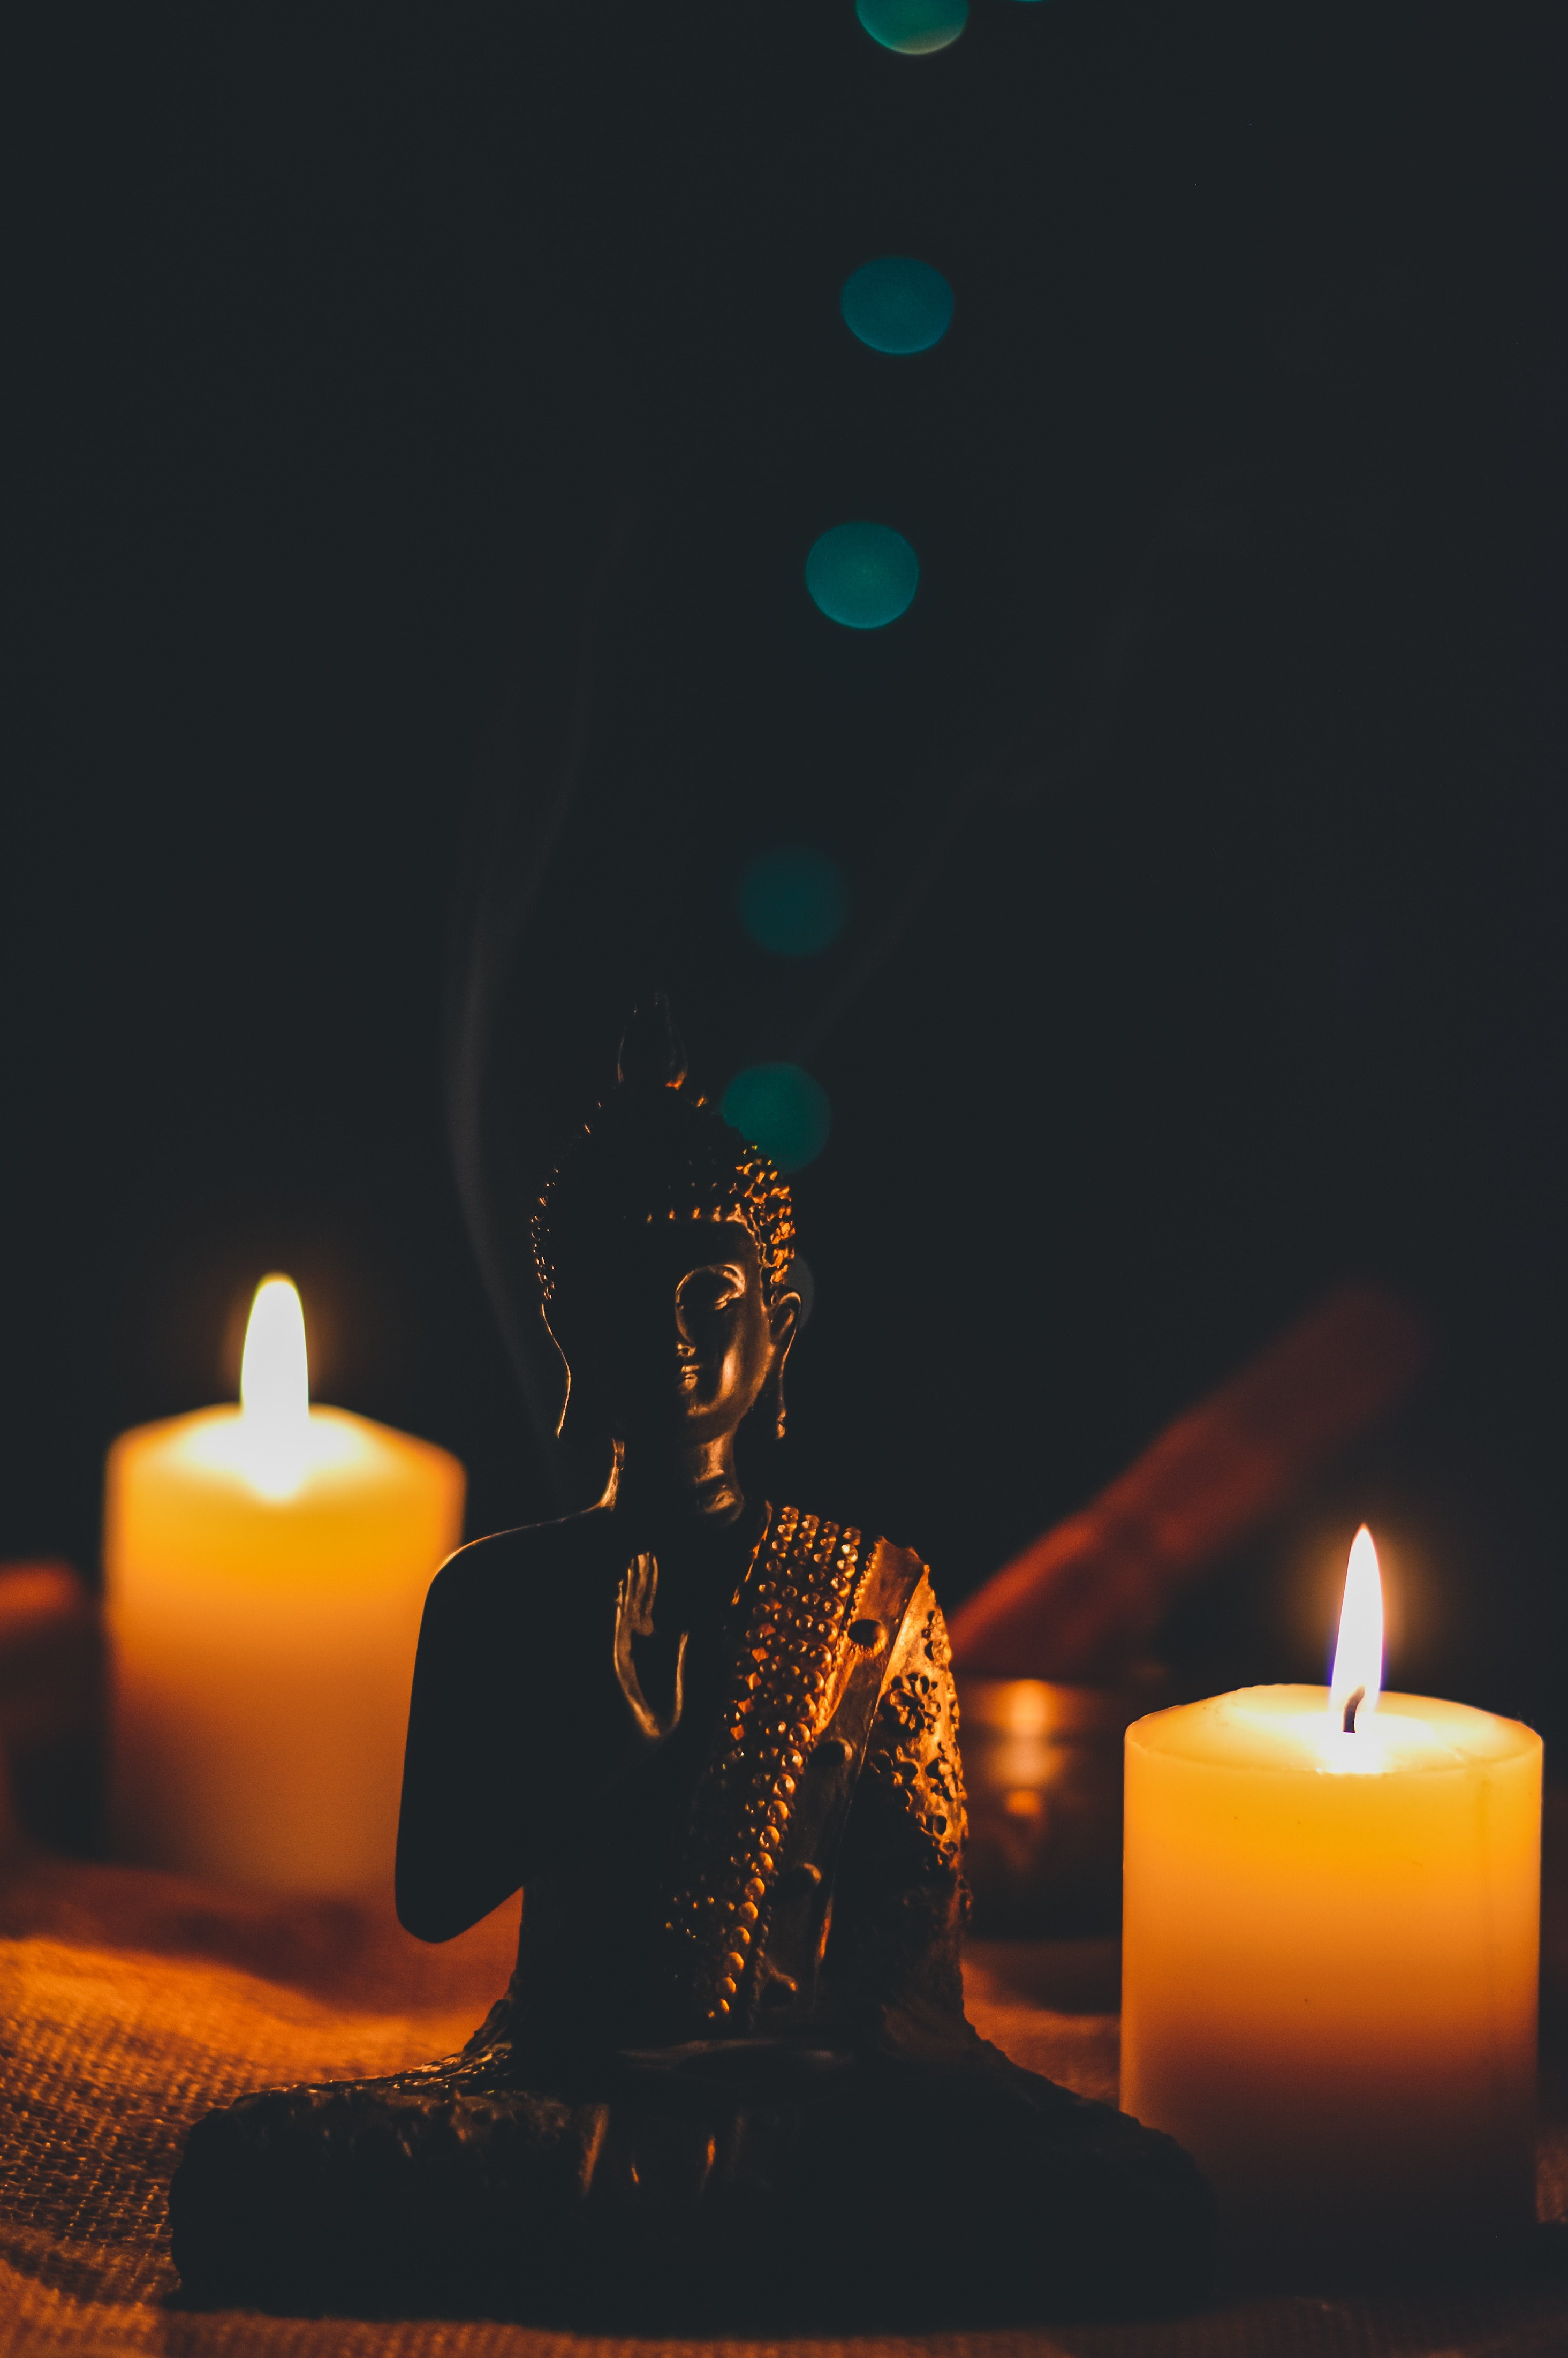 82360 Screensavers and Wallpapers Candles for phone. Download Candles, Buddha, Dark, Buddhism, Statuette, Harmony pictures for free